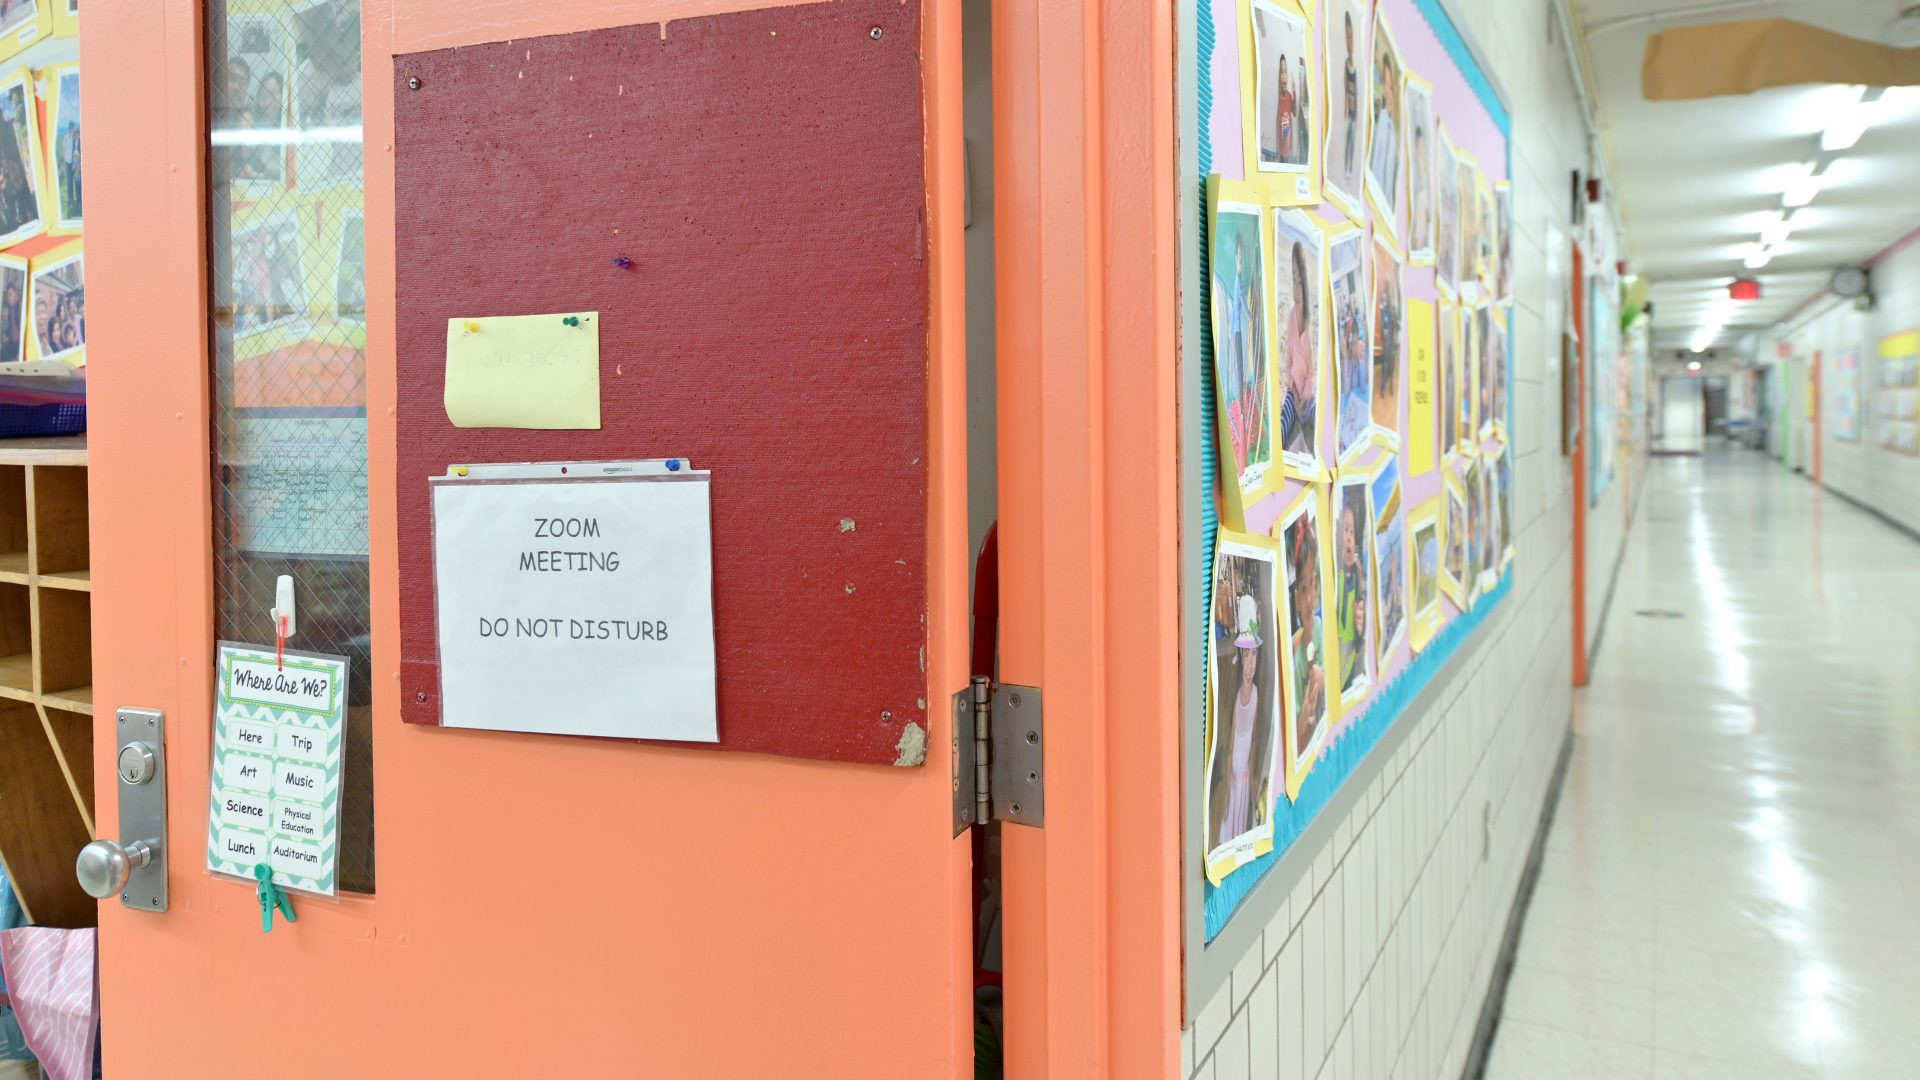 The first day back to school on Dec. 7 at Yung Wing School P.S. 124 in New York City. Students whose parents opted for blended learning returned to school after all were shut down a few weeks earlier. Millions of students are still going to school online.